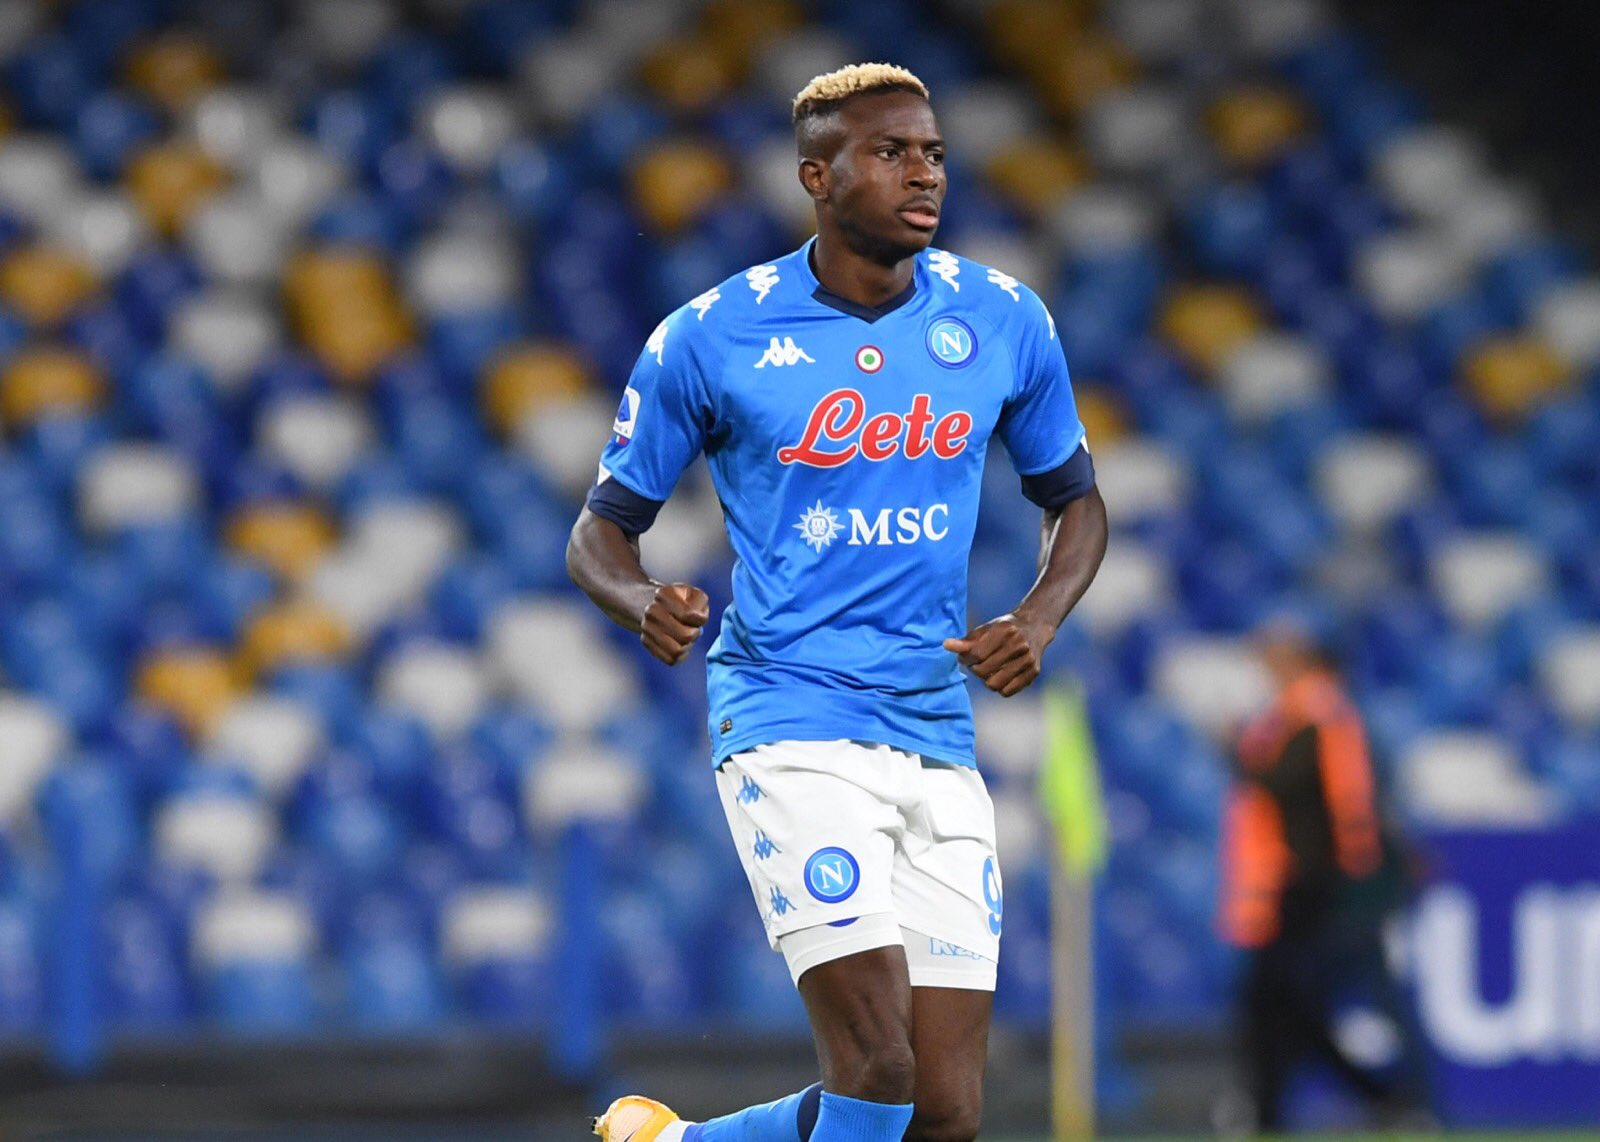 Spalletti: I Will Help Osimhen Become A Better Player